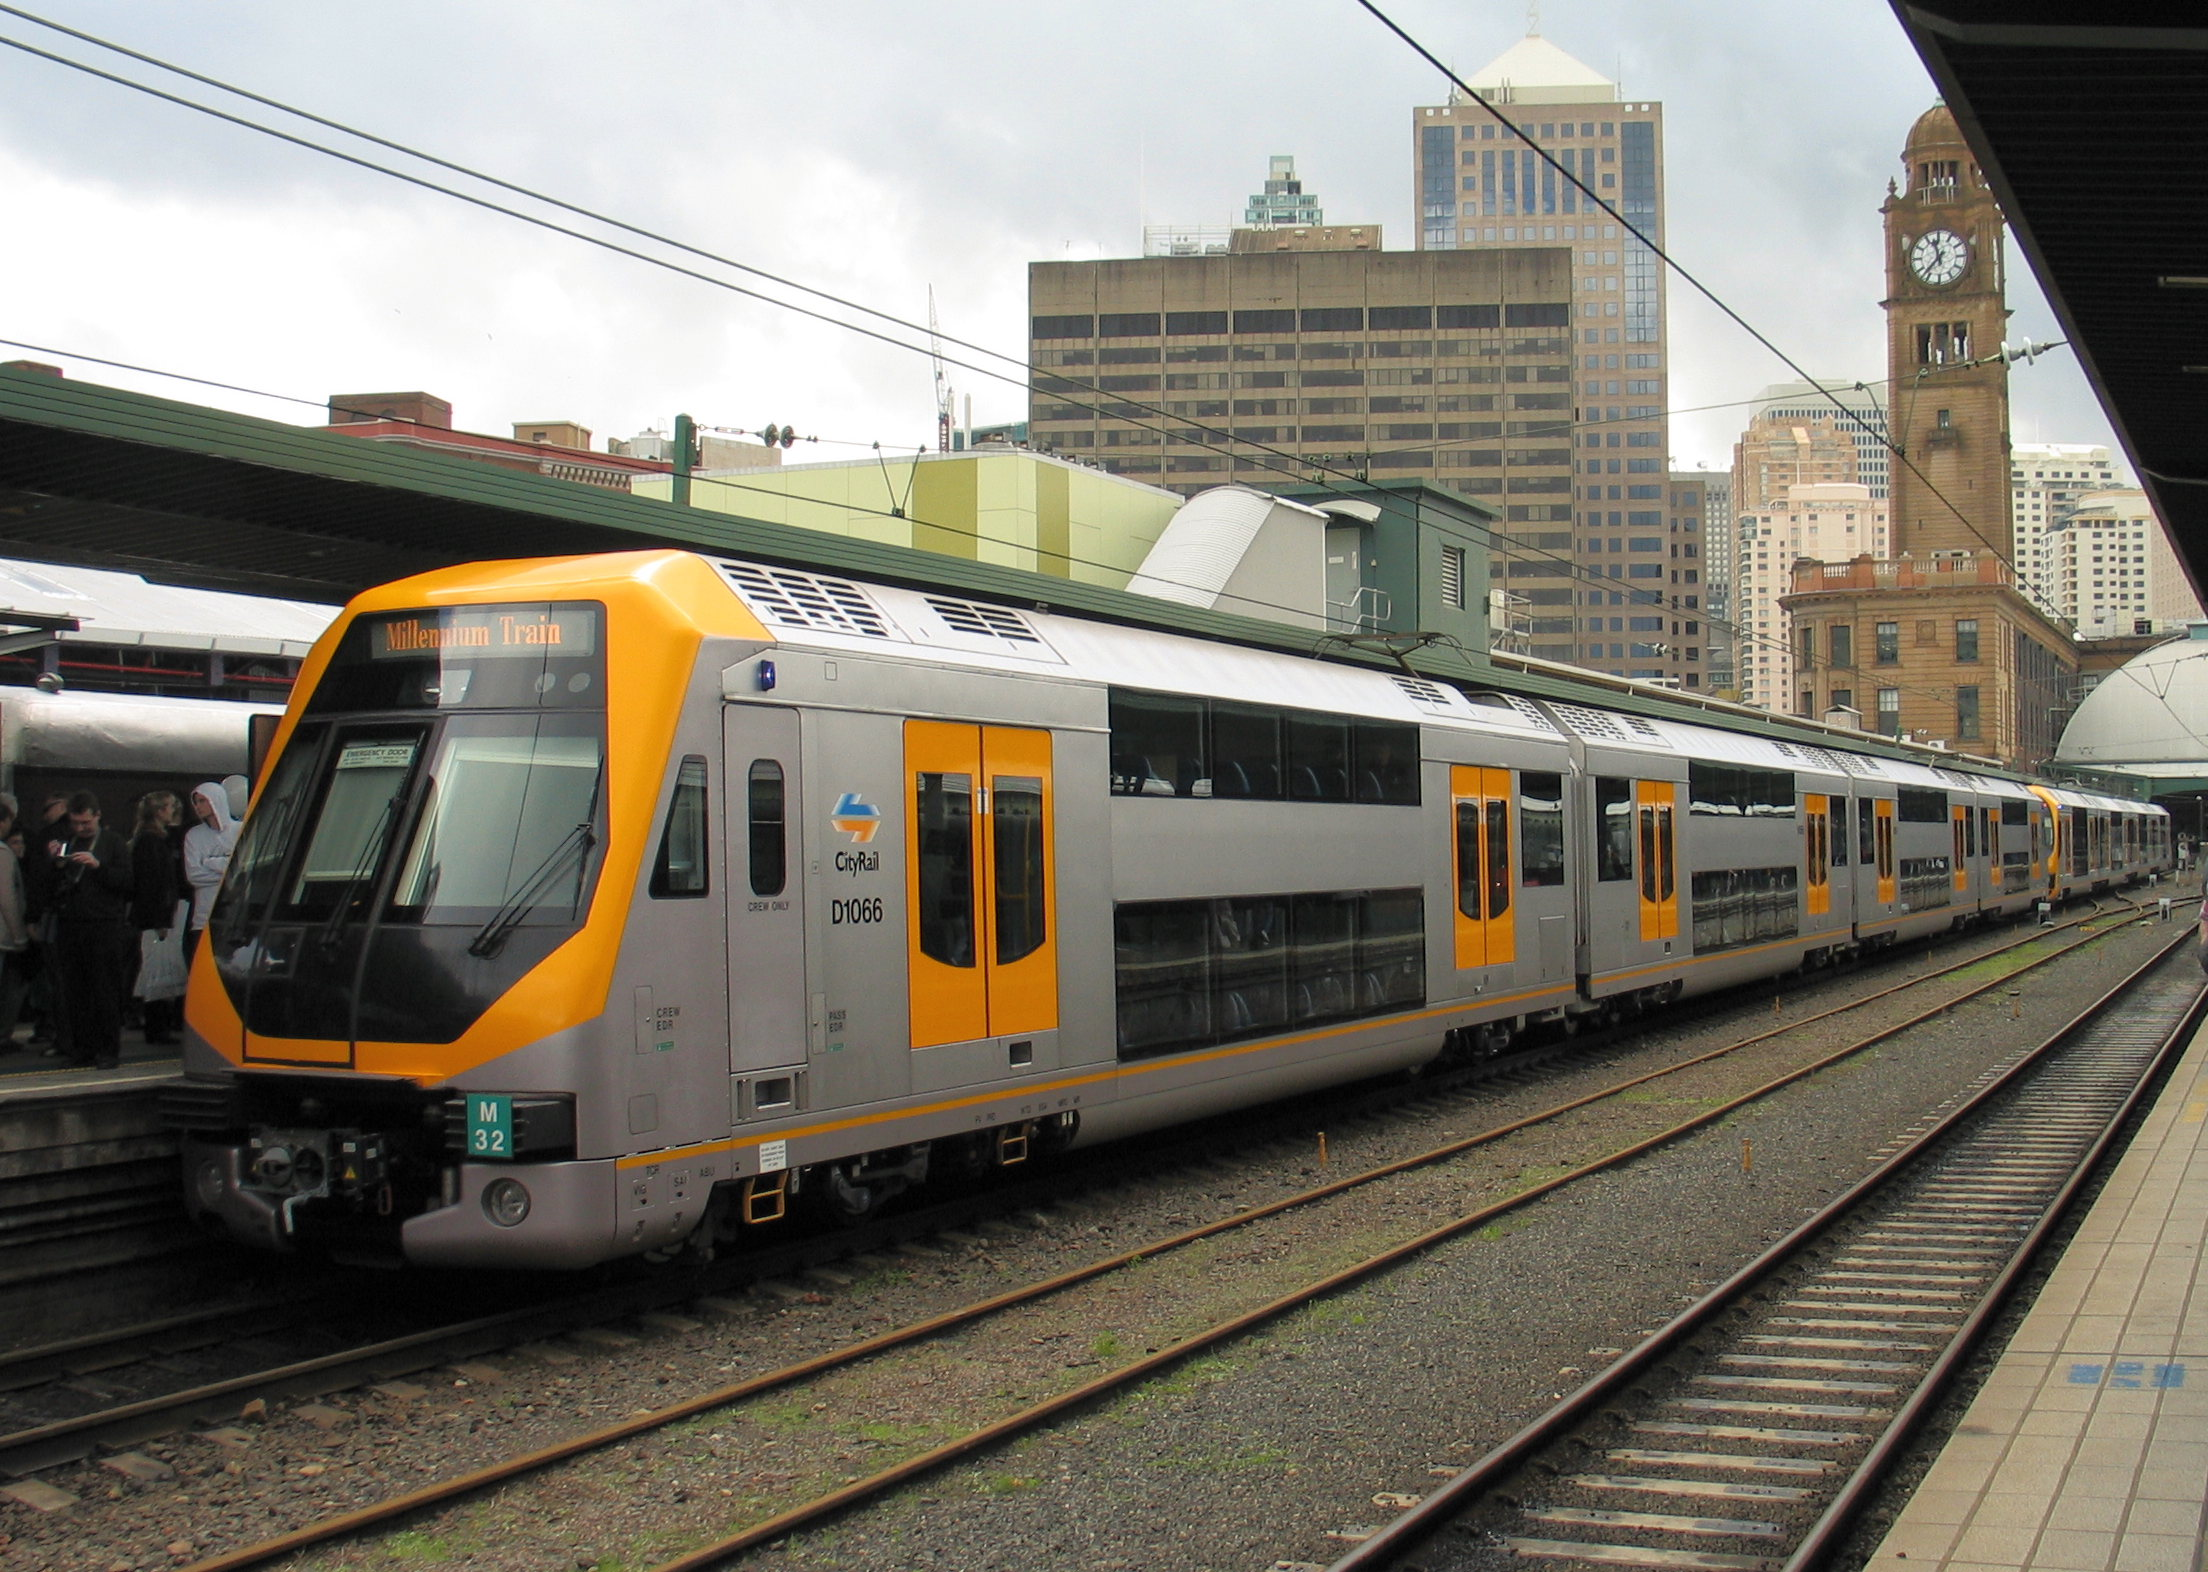 Sydney Trains M set - Wikipedia